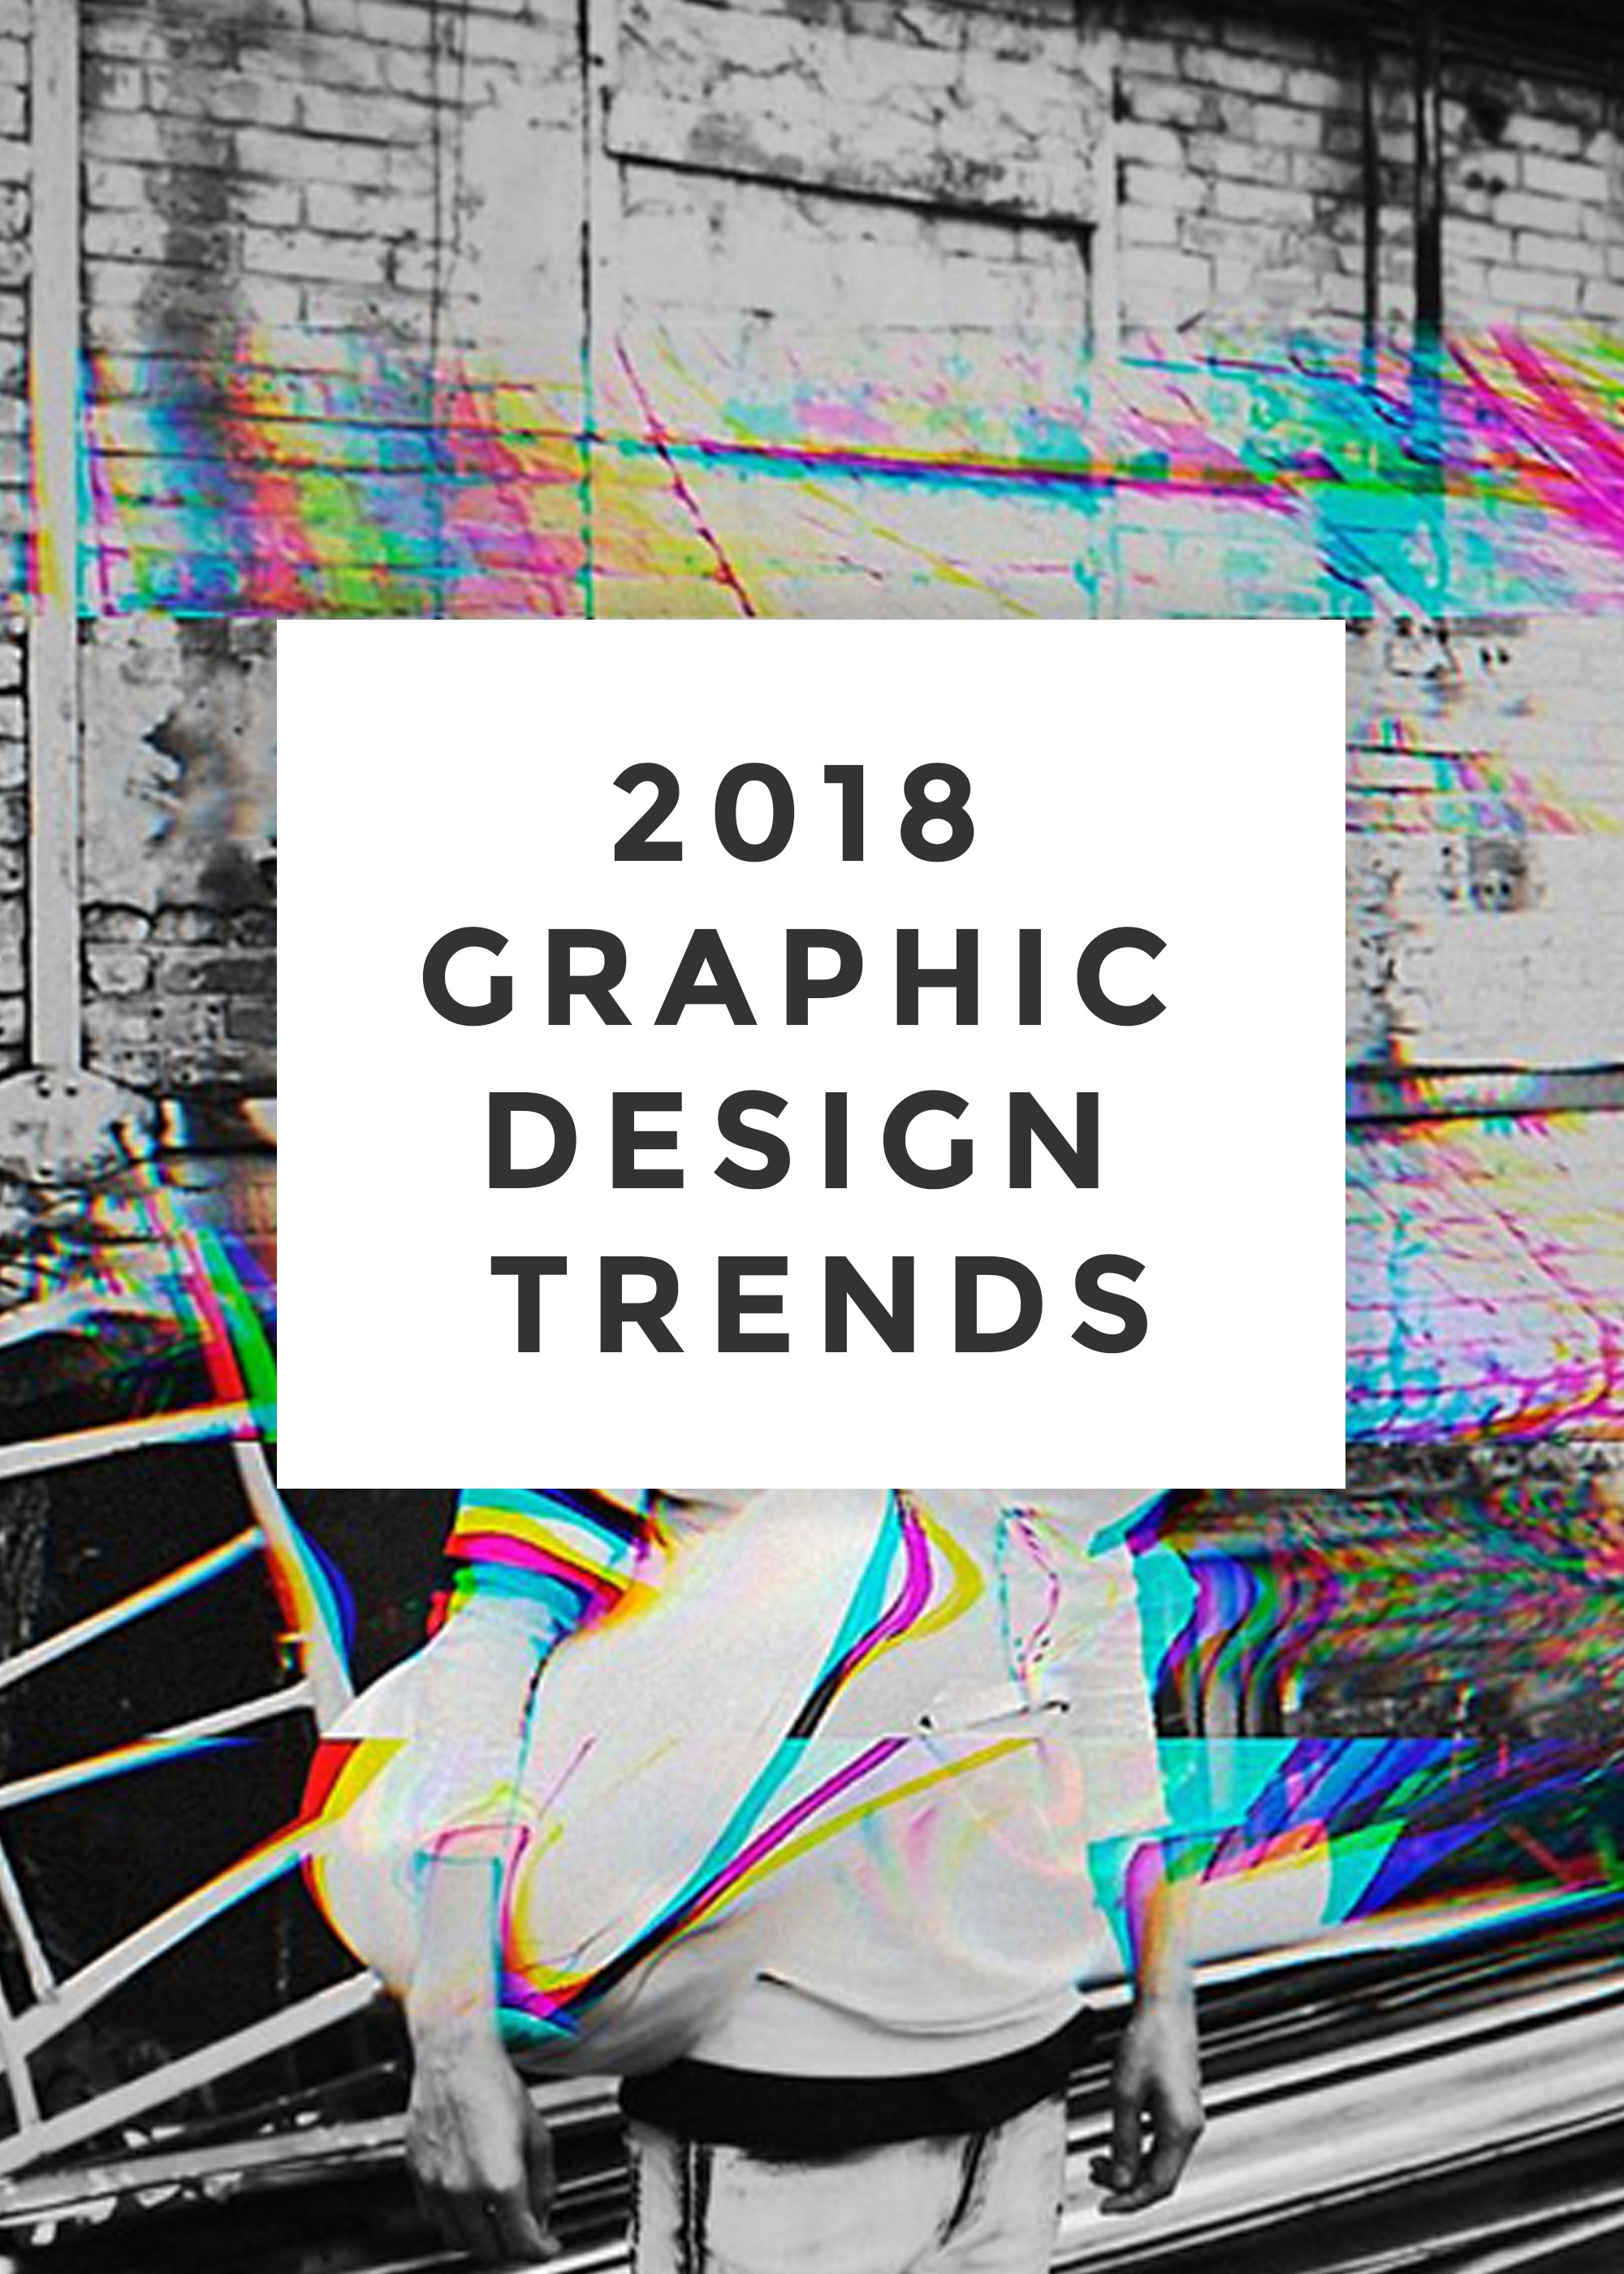 2018 Graphic Design Trends In The Age Of Digital Art Graphic By Mousecrafted Medium